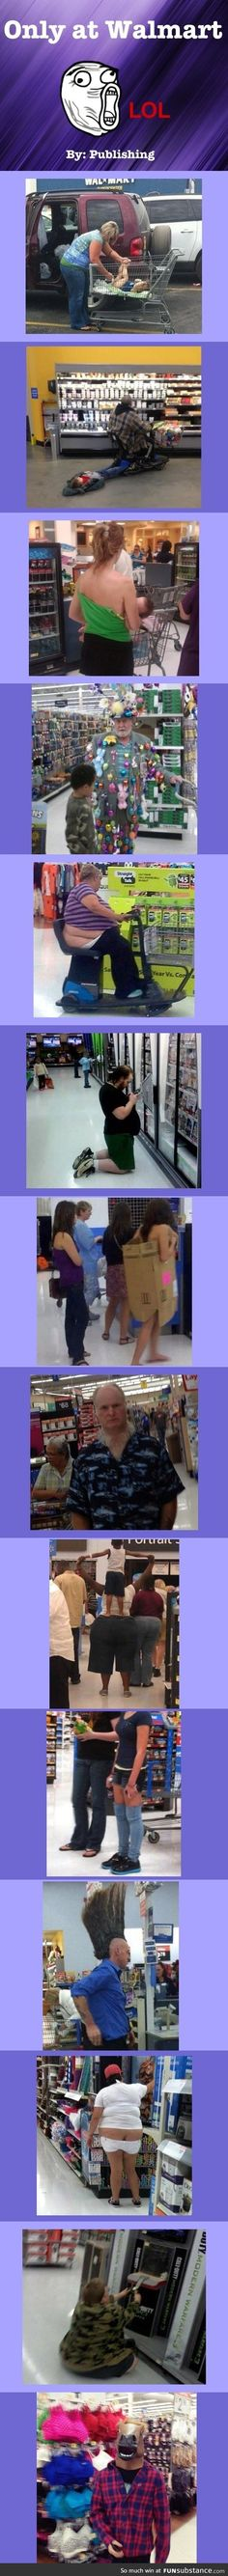 Only at Wal-Mart #compartirvideos #imagenesdivertidas